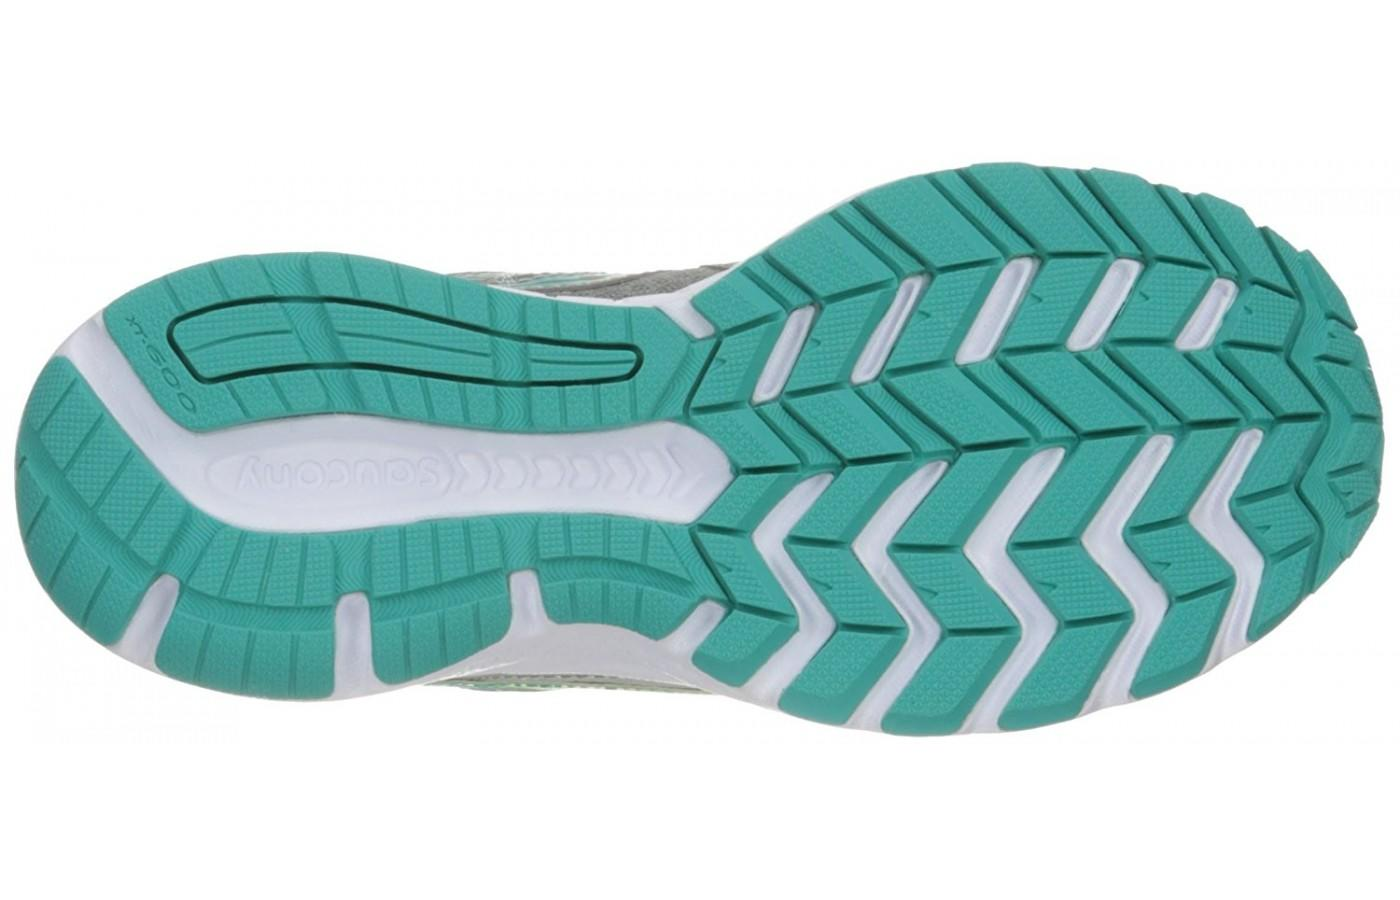 Saucony Cohesion 10 outsole